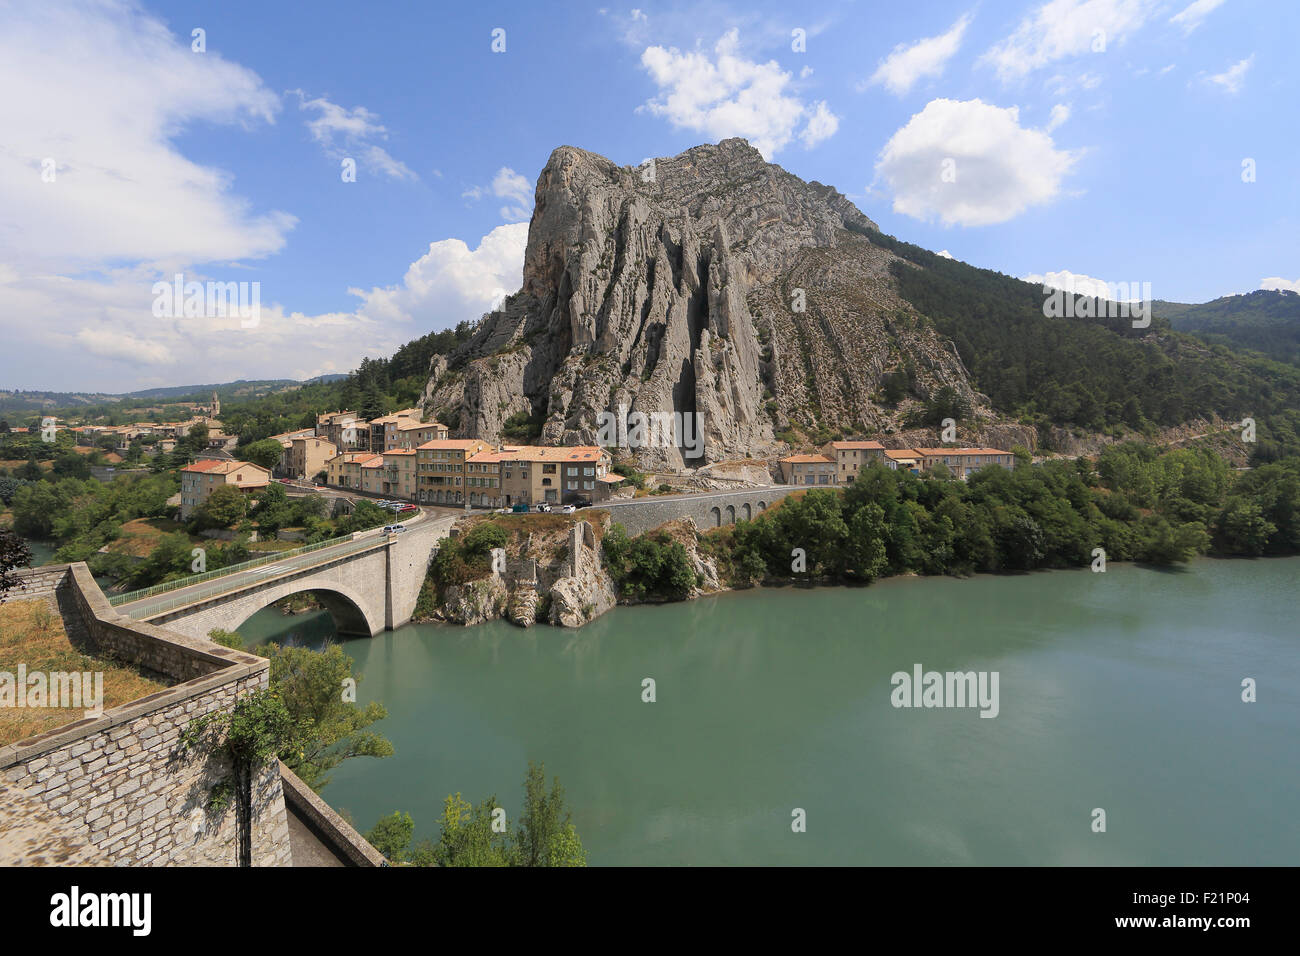 View of the Rocher de la Baume and the river Durance, Sisteron, Alpes-de-Haute-Prove, France - Stock Image